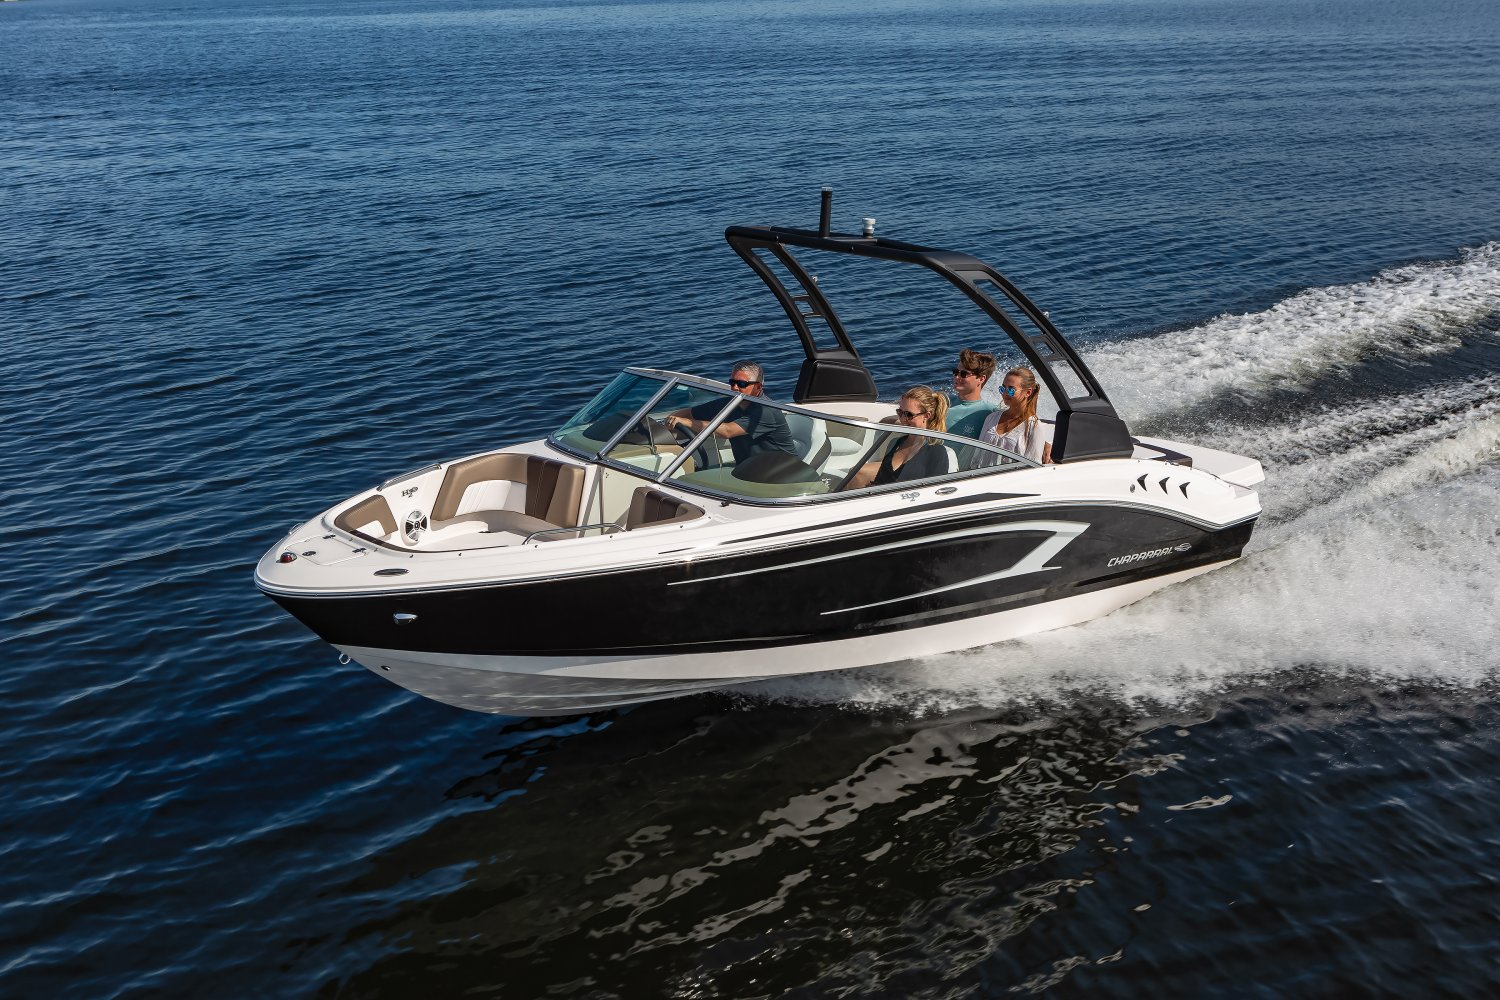 21' Chaparral H2O 250hp I/O with wakeboard tower